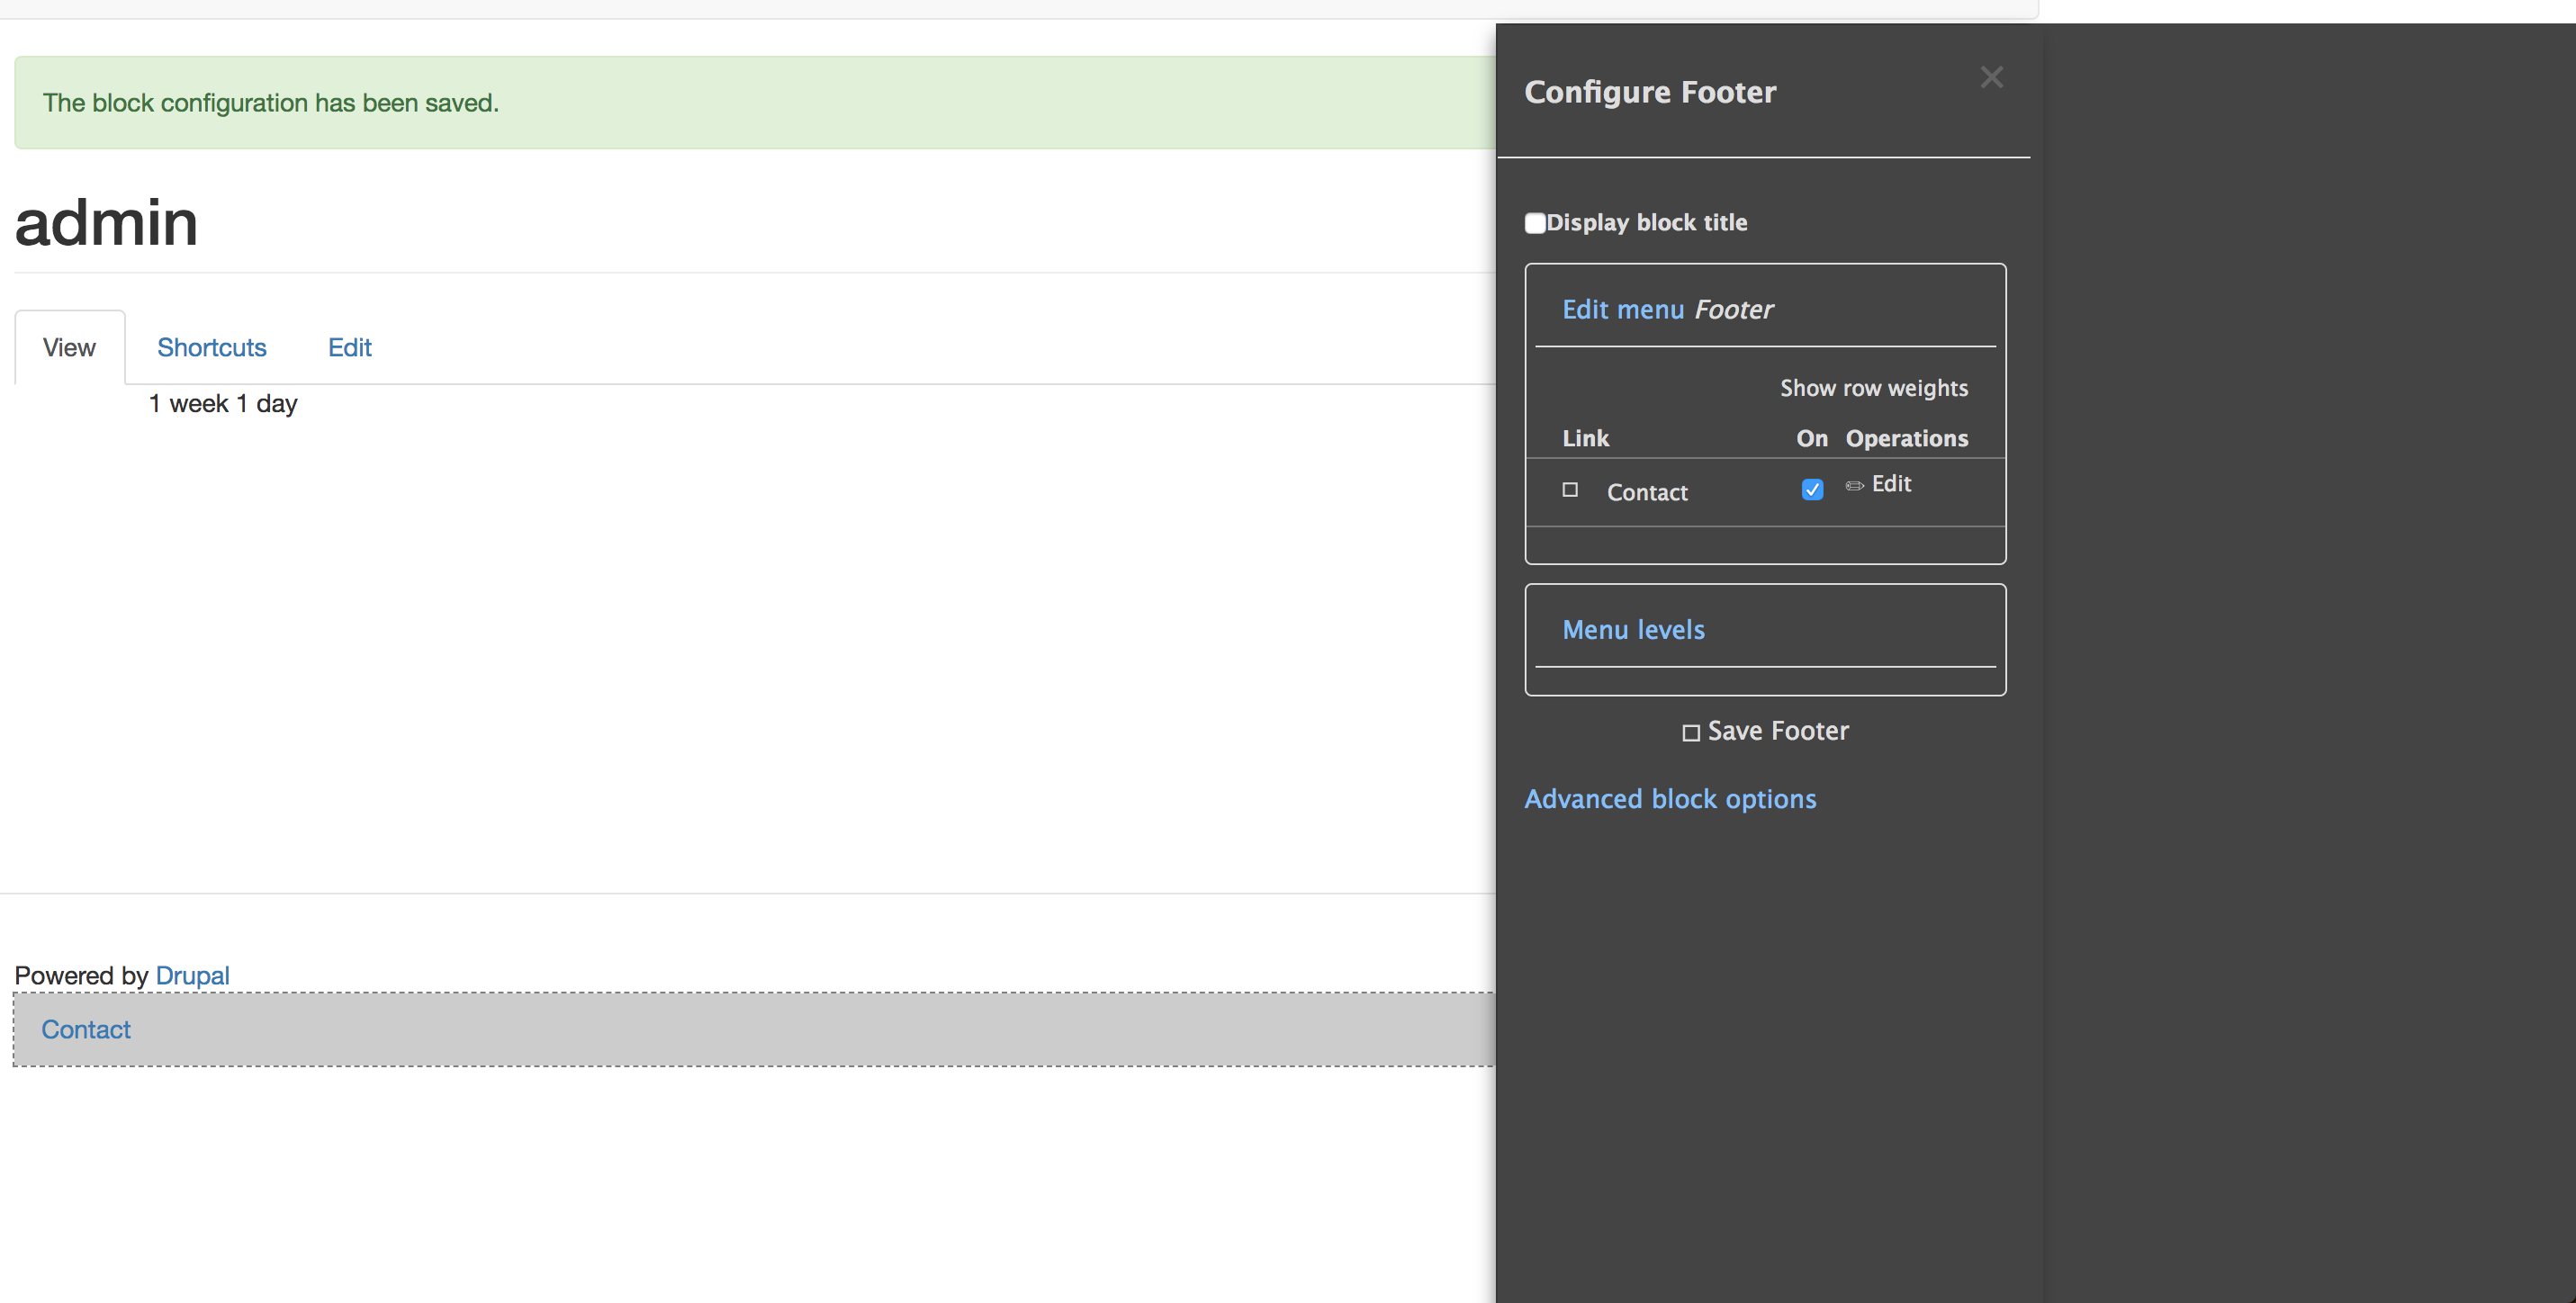 bootstrap] Add support for the Off-canvas dialog used by Settings